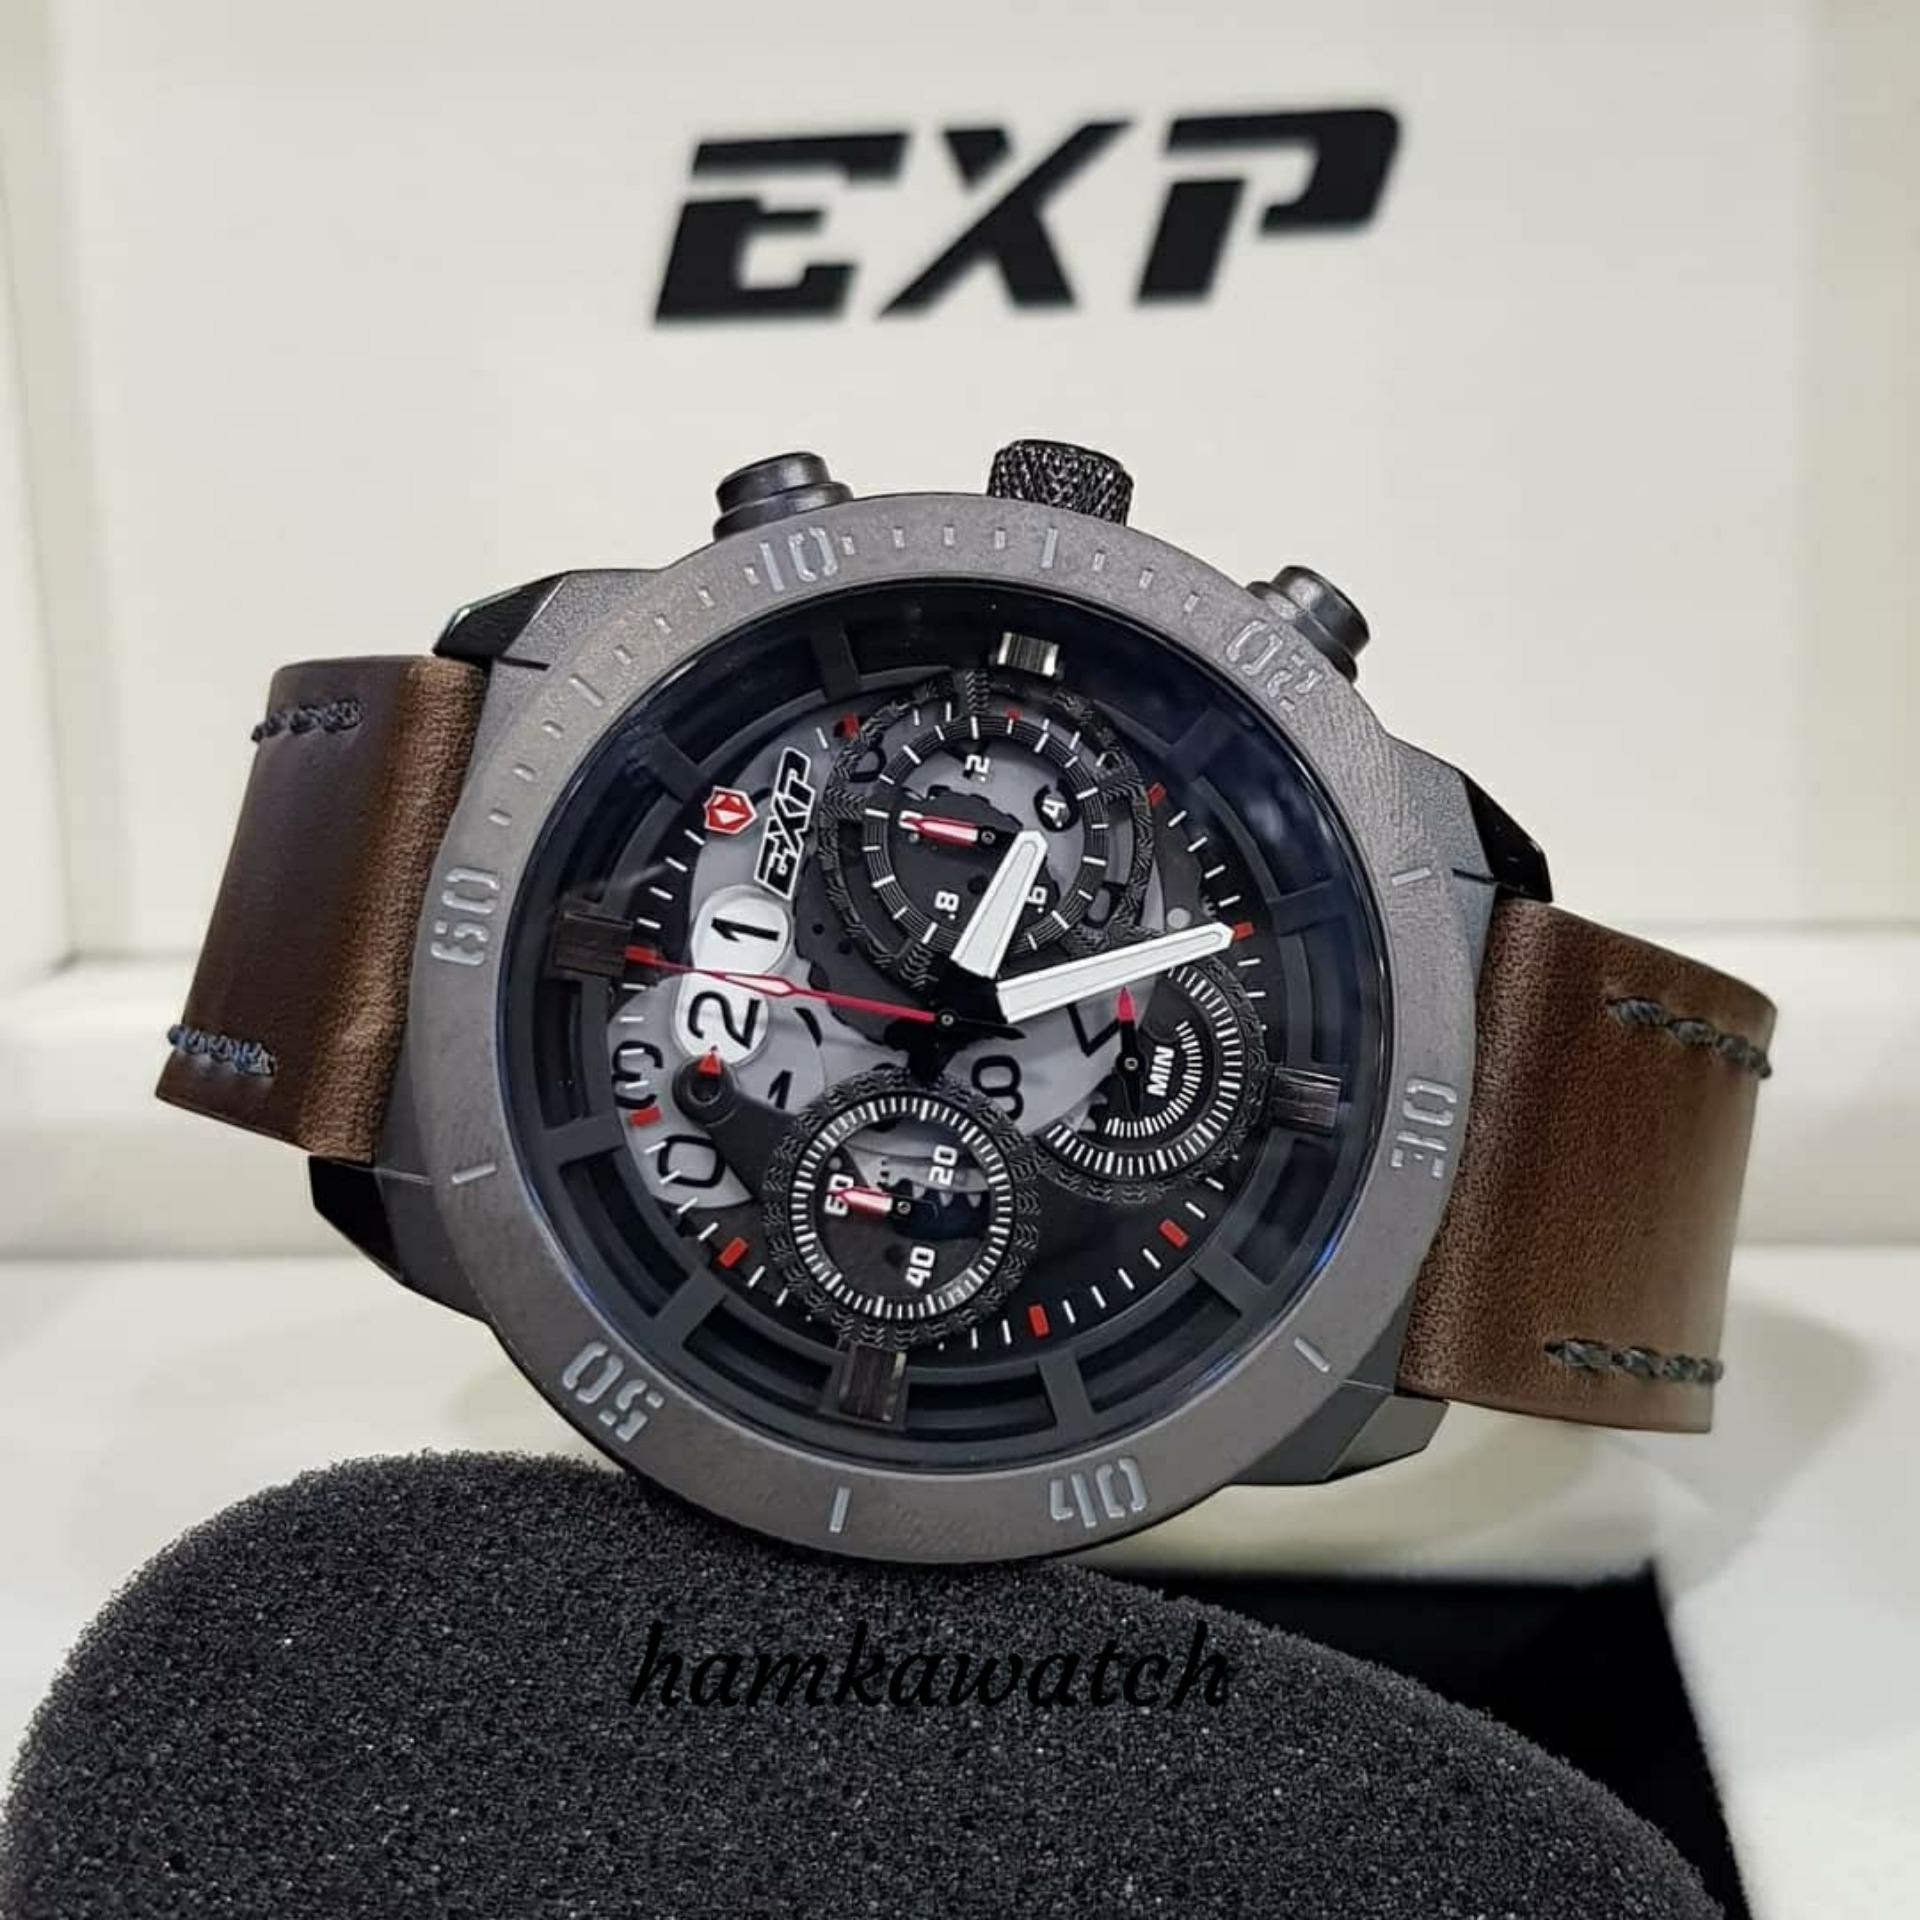 Buy Sell Cheapest Expedition Exp 6680 Best Quality Product Deals Jam Tangan Pria 6381 Mcbtbba Silver Hitam Original Exp3006 Black Leather Brown